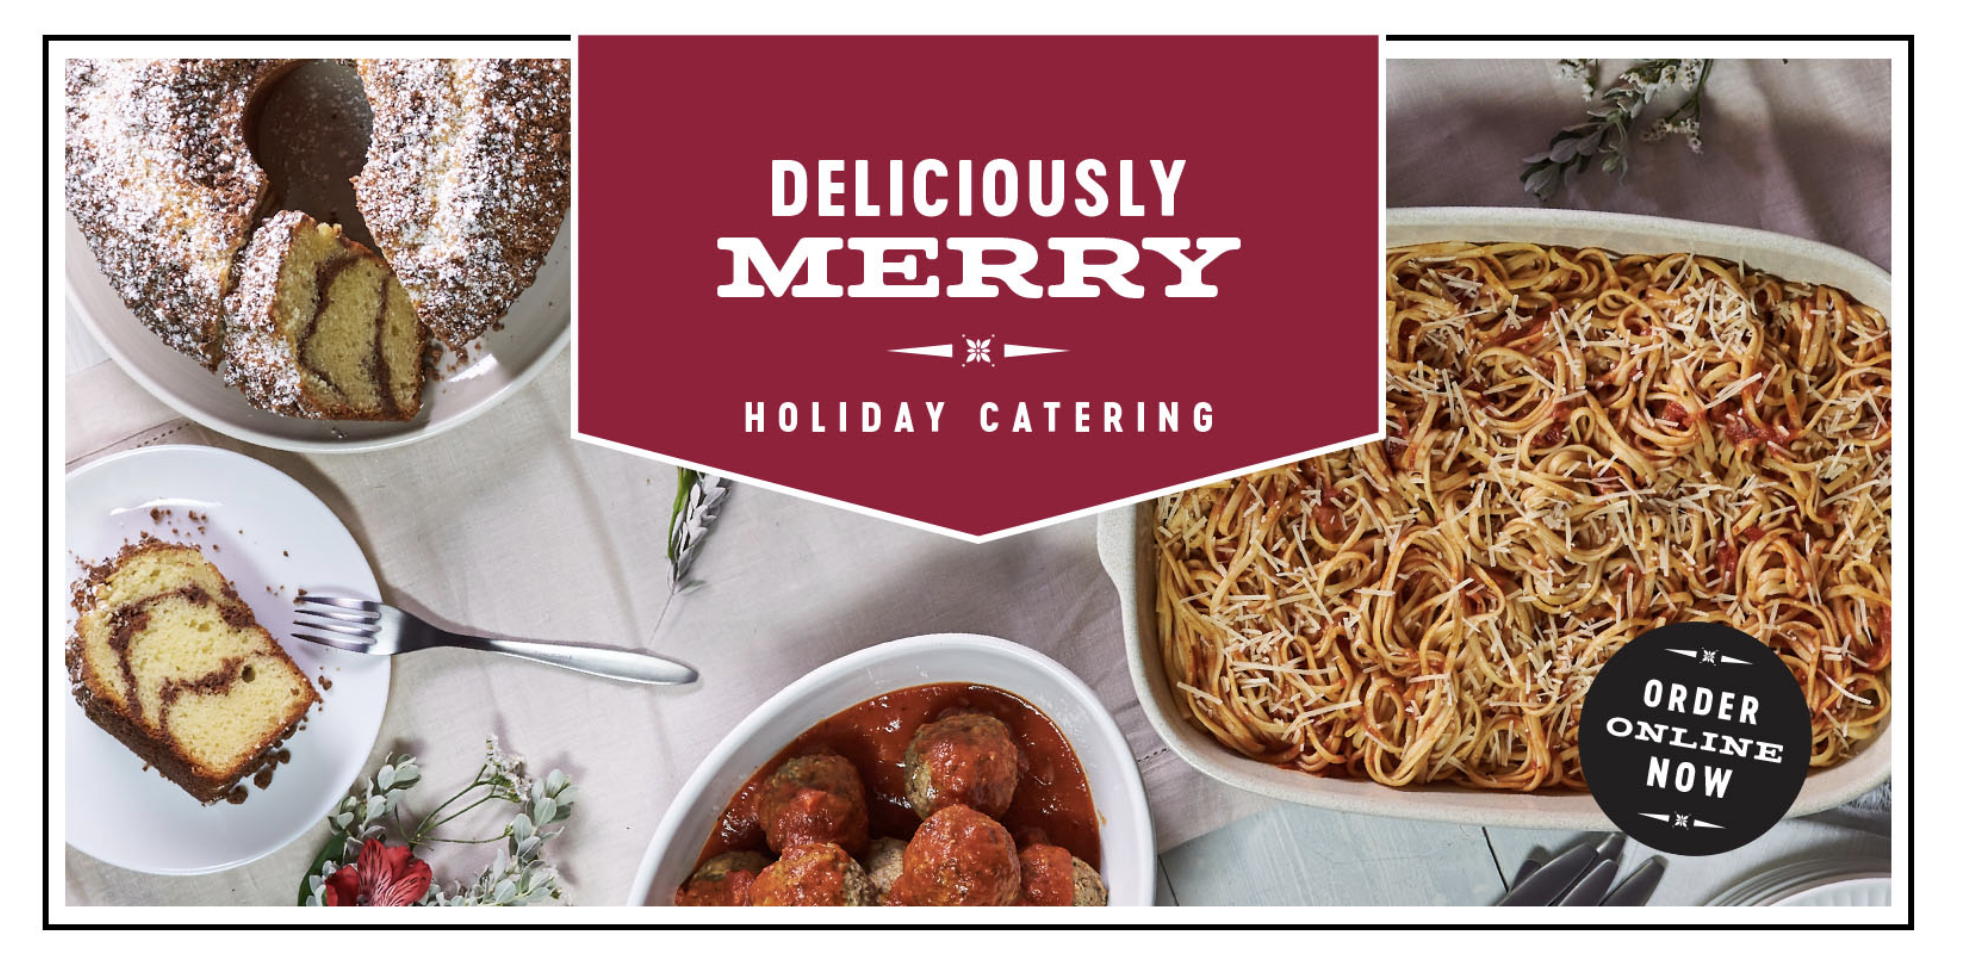 Deliciously Merry Holiday Catering